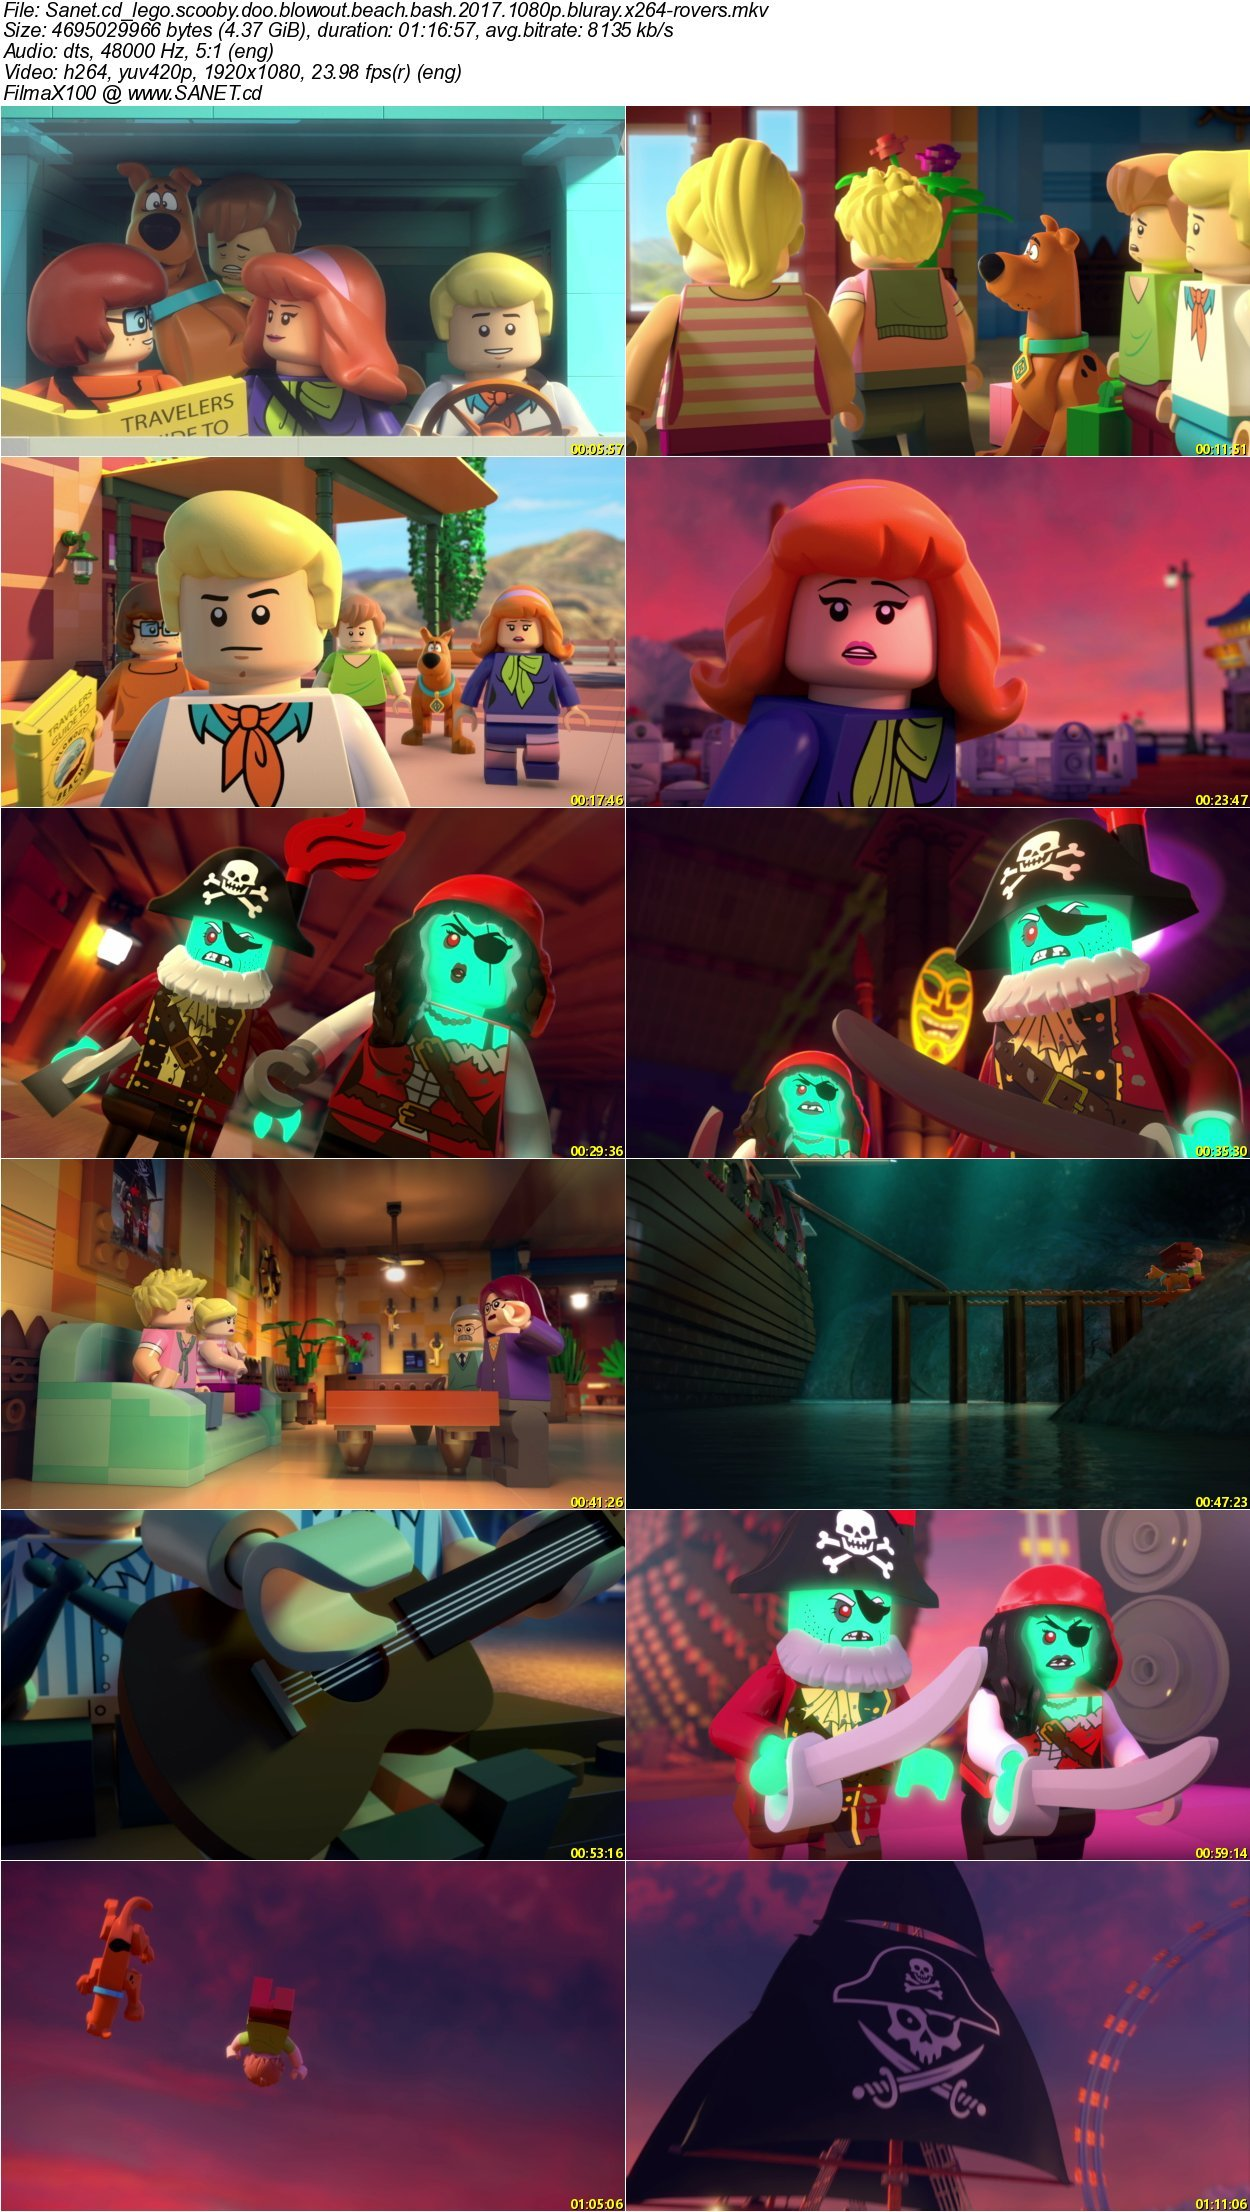 Lego Scooby Doo Blowout Beach Bash   Rovers